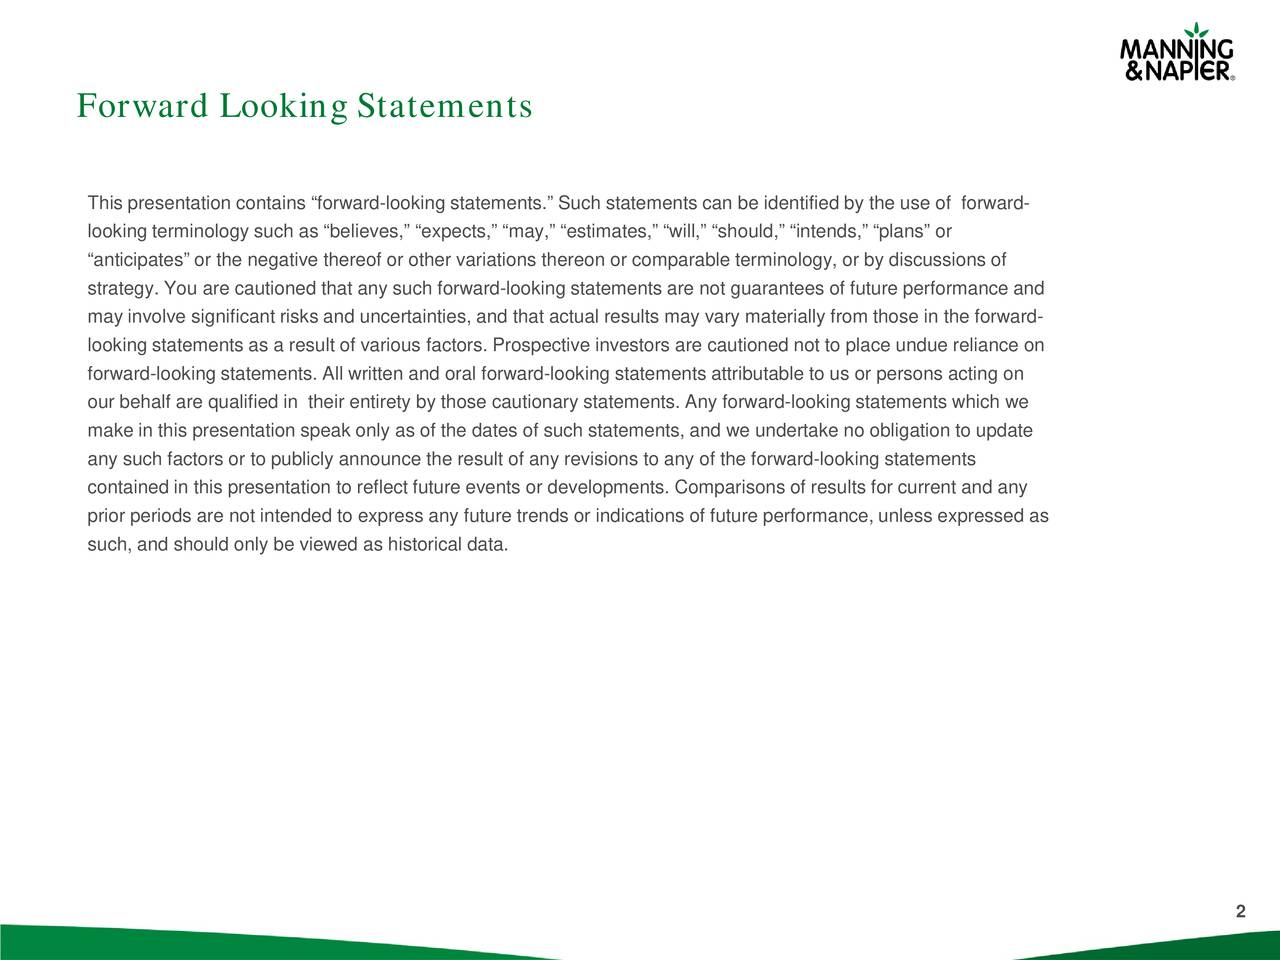 This presentation contains forward-looking statements. Such statements can be identified by the use of forward- looking terminology such as believes, expects, may, estimates, will, should, intends, plans or anticipates or the negative thereof or other variations thereon or comparable terminology, or by discussions of strategy. You are cautioned that any such forward-looking statements are not guarantees of future performance and may involve significant risks and uncertainties, and that actual results may vary materially from those in the forward- looking statements as a result of various factors. Prospective investors are cautioned not to place undue reliance on forward-looking statements. All written and oral forward-looking statements attributable to us or persons acting on our behalf are qualified in their entirety by those cautionary statements. Any forward-looking statements which we make in this presentation speak only as of the dates of such statements, and we undertake no obligation to update any such factors or to publicly announce the result of any revisions to any of the forward-looking statements contained in this presentation to reflect future events or developments. Comparisons of results for current and any prior periods are not intended to express any future trends or indications of future performance, unless expressed as such, and should only be viewed as historical data. 2